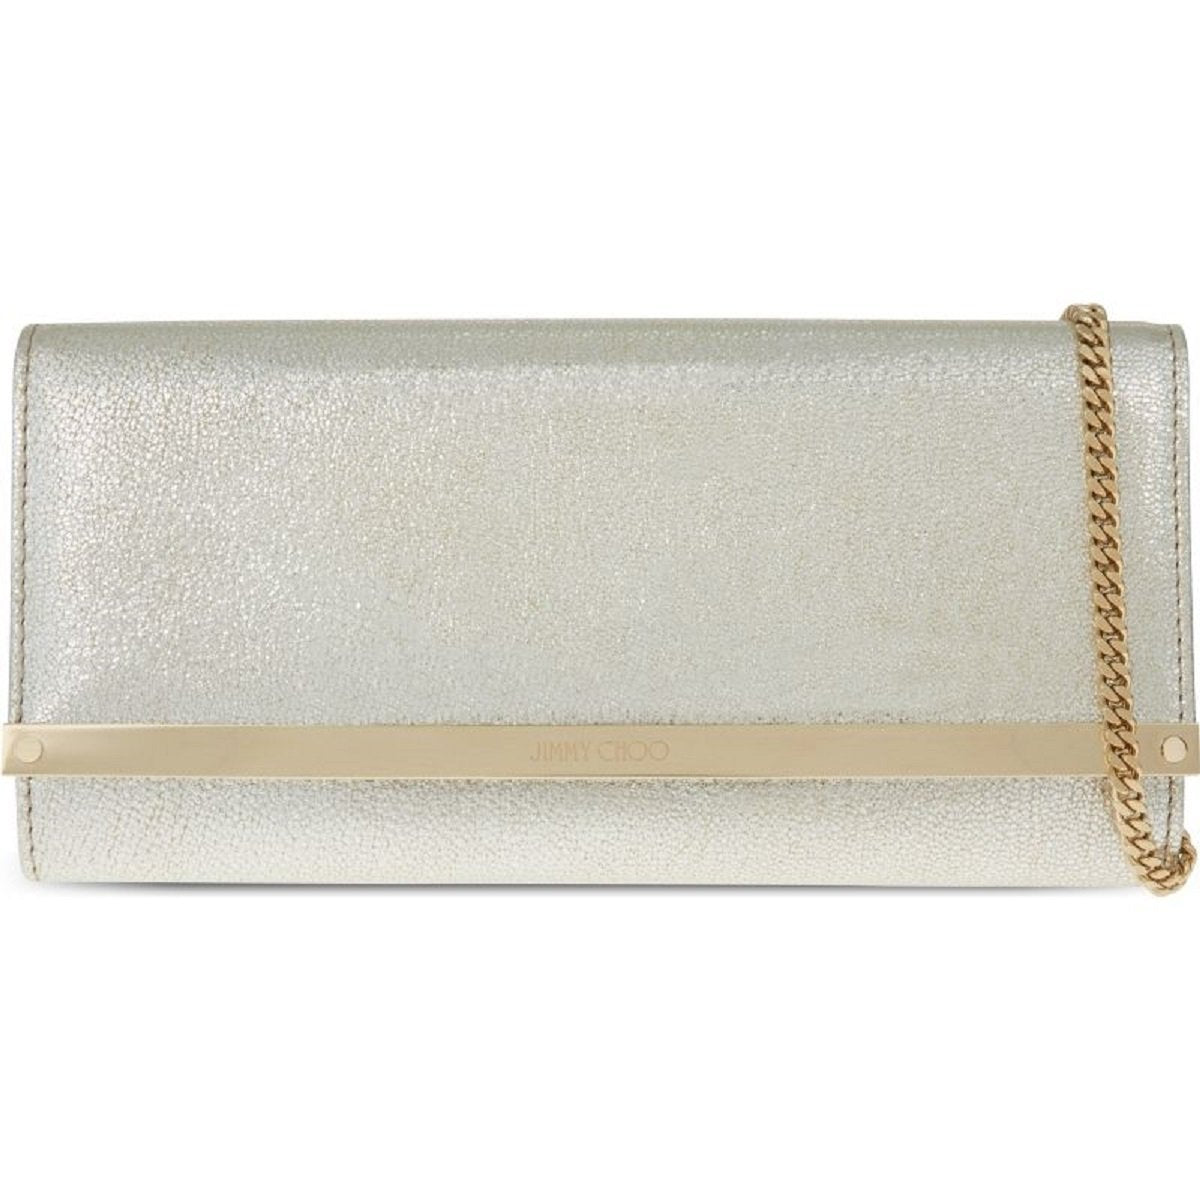 "Jimmy Choo Women's Metallic ""Milla"" Lambskin Silver Gold Leather Clutch Bag GLE151"